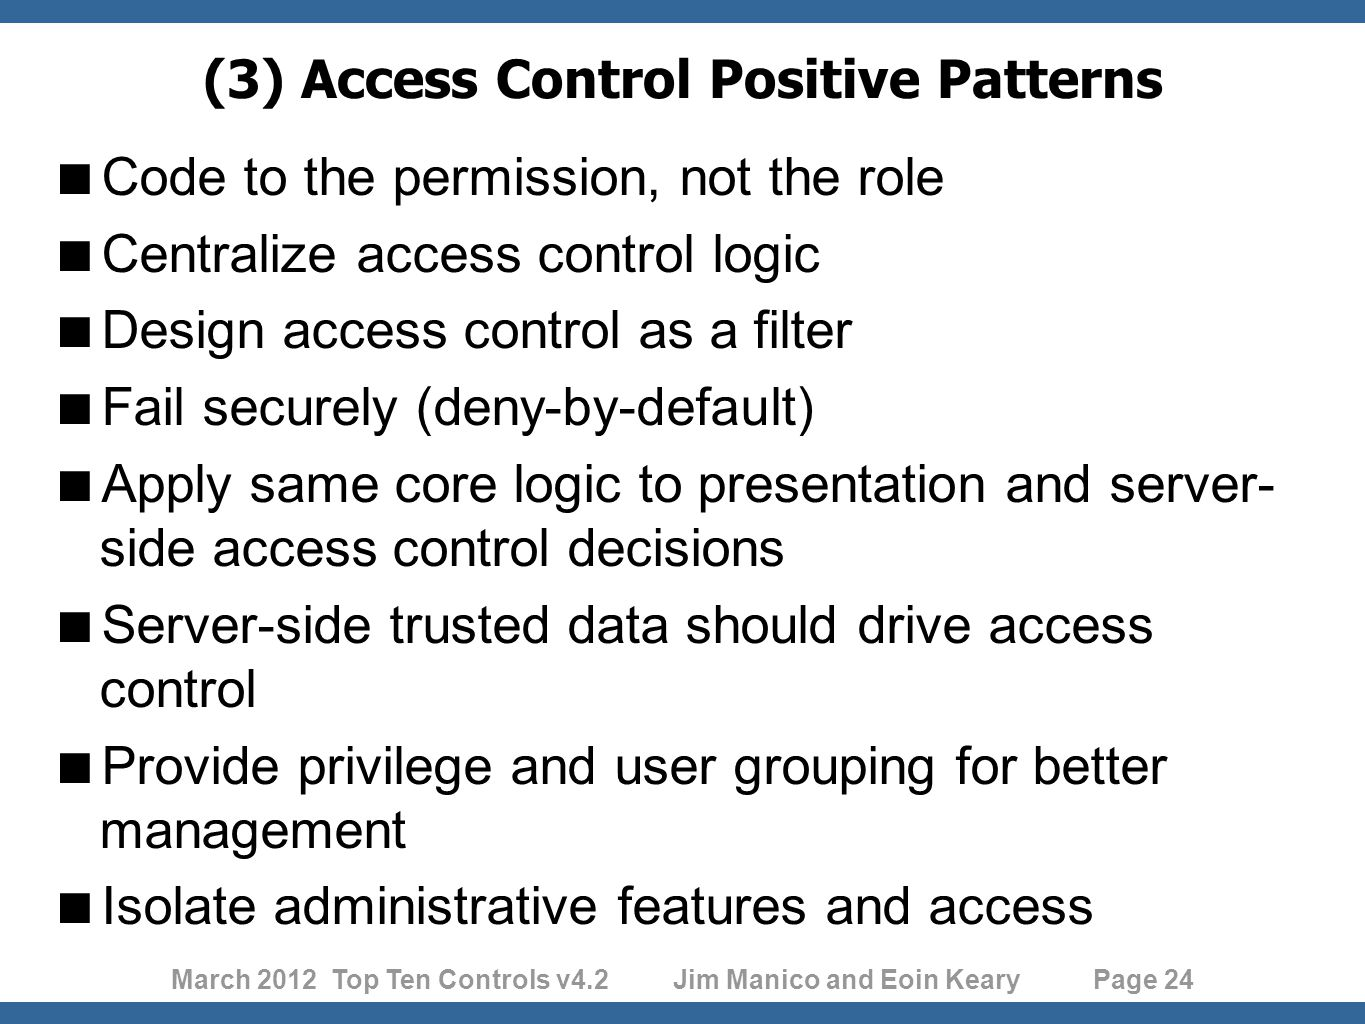 March 2012 Top Ten Controls v4.2 Jim Manico and Eoin Keary Page 24 (3) Access Control Positive Patterns  Code to the permission, not the role  Centralize access control logic  Design access control as a filter  Fail securely (deny-by-default)  Apply same core logic to presentation and server- side access control decisions  Server-side trusted data should drive access control  Provide privilege and user grouping for better management  Isolate administrative features and access